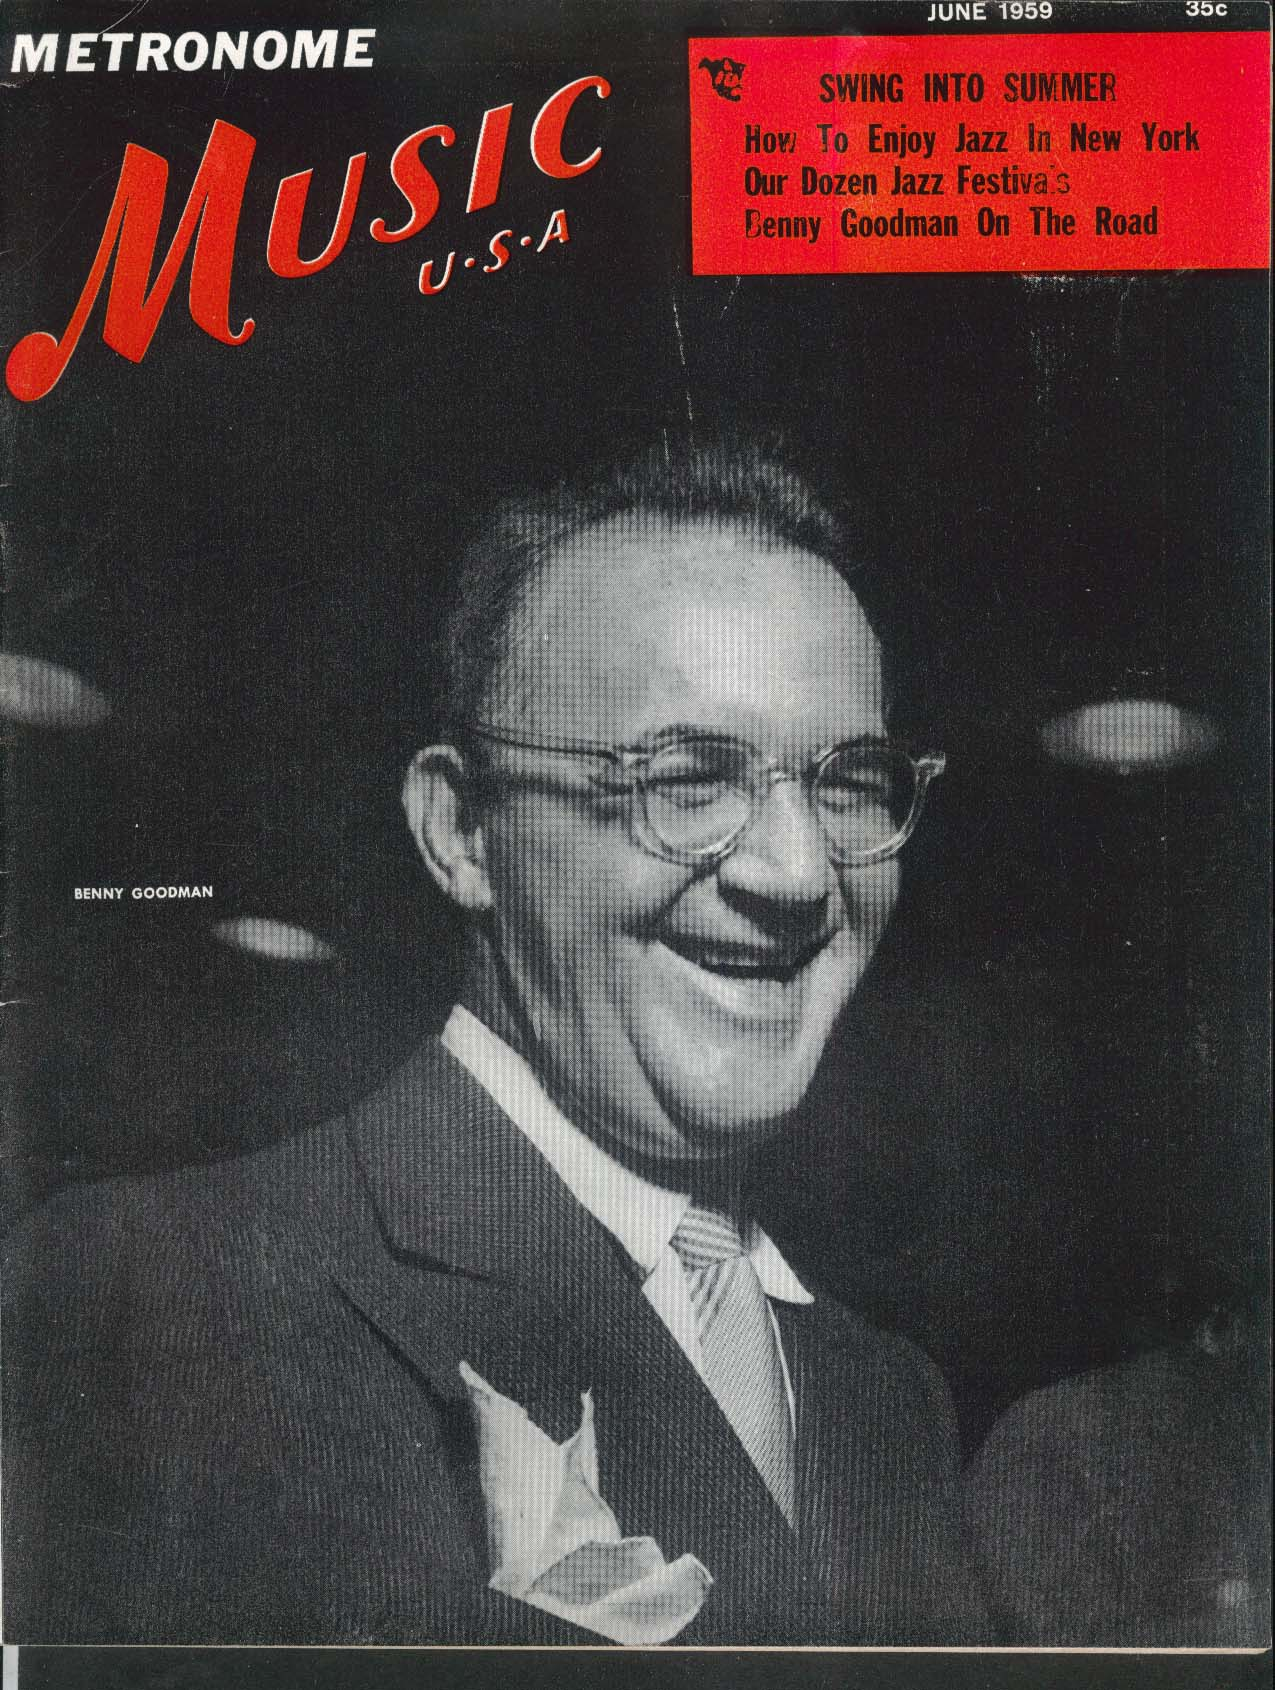 Metronome MUSIC USA Benny Goodman Bill Russo 6 1959